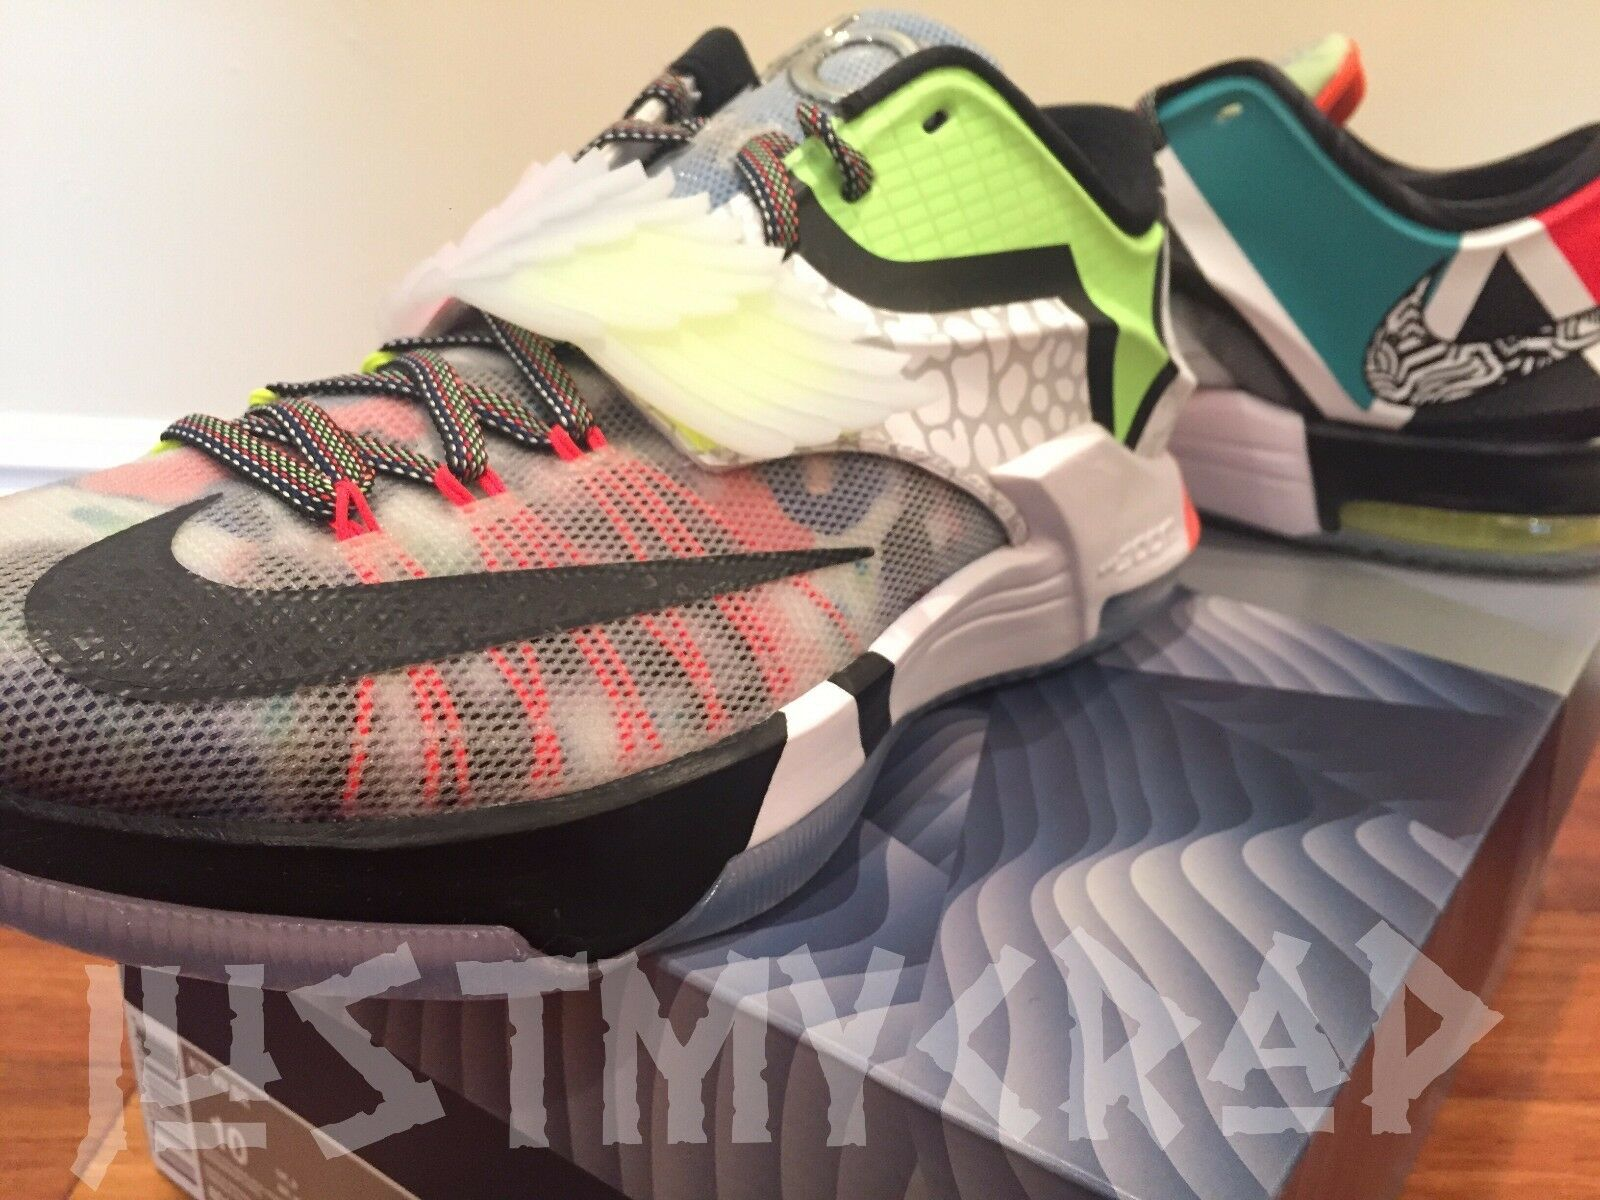 NEW ds Nike WTKD Durant 7 VII SE What the Chaussures KD Multi Color Hommes Chaussures the 10 sold out 305ce9